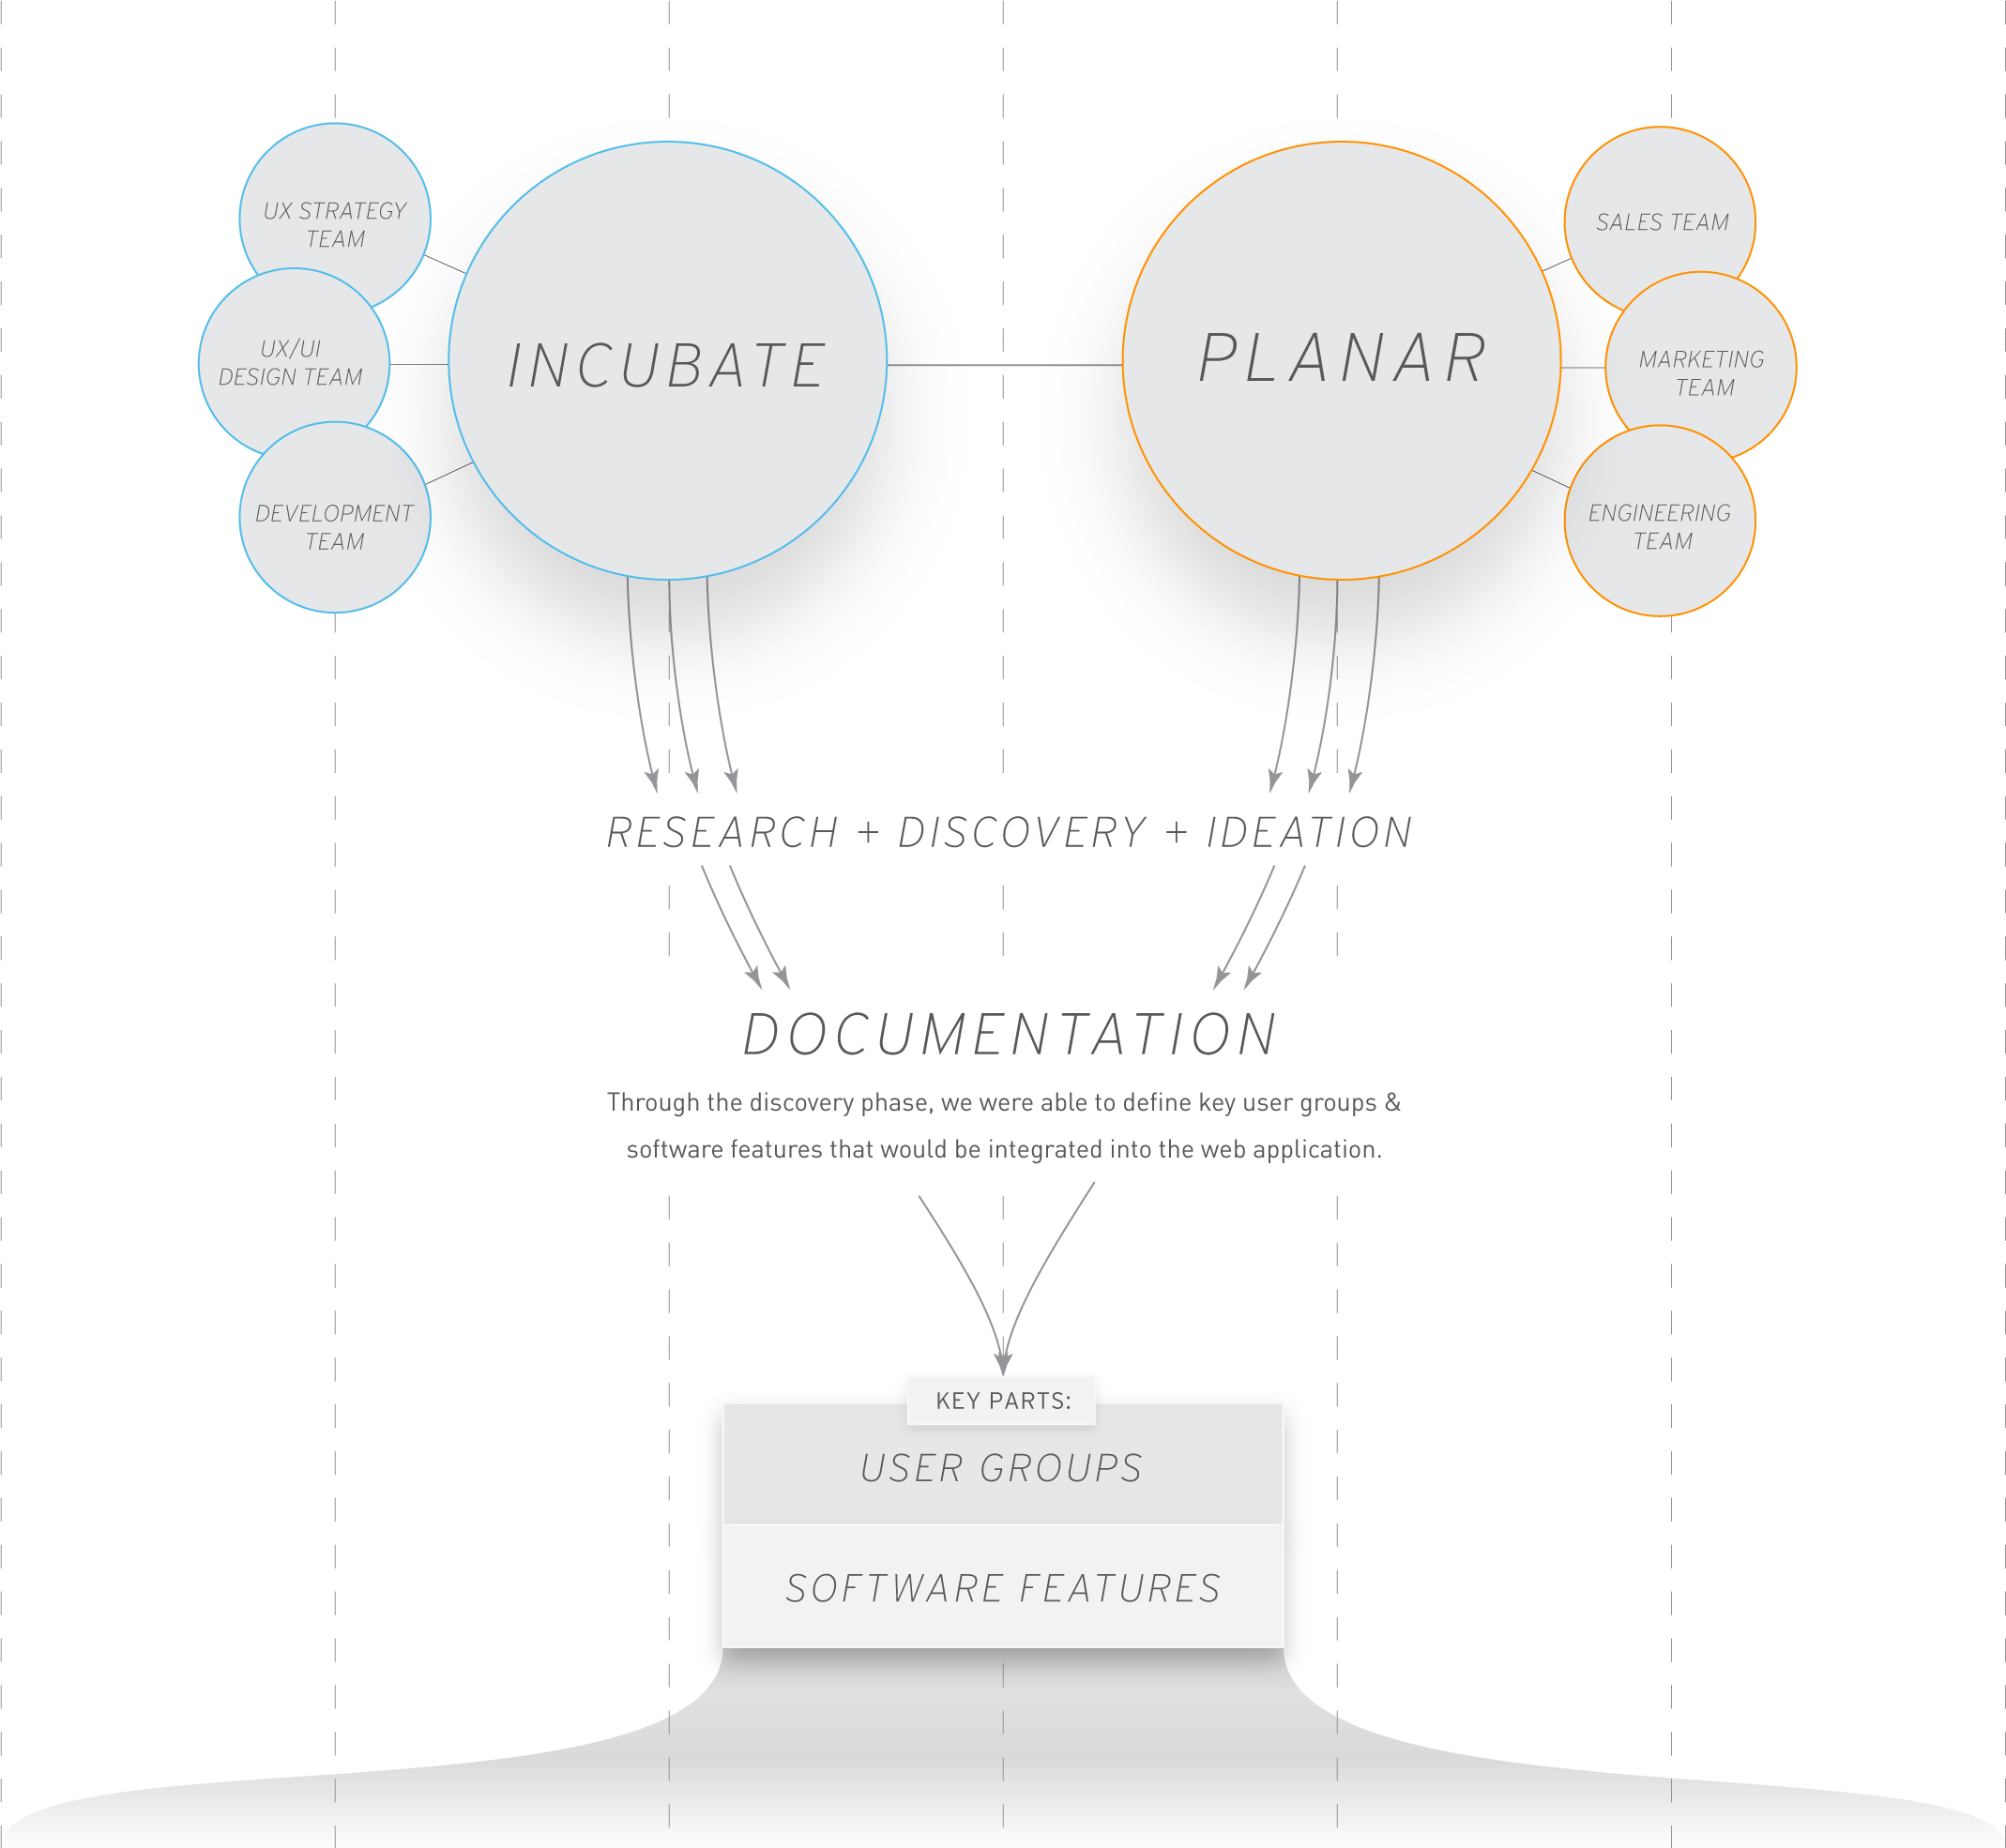 incubate-leyard-planar-wall-director-web-application-process-chart